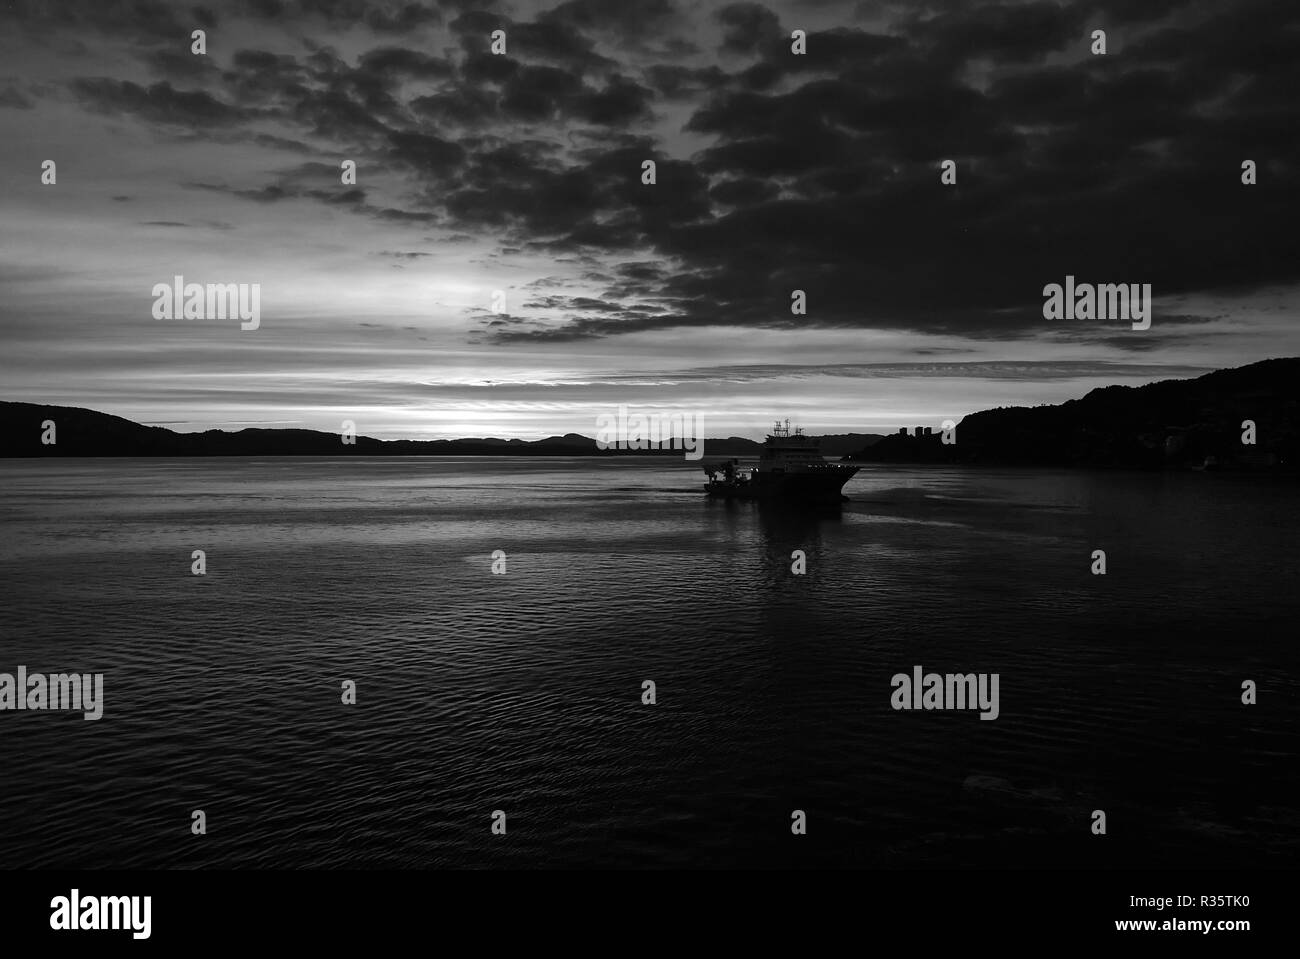 Seascape after sunset in Bergen, Norway. Ship in sea in evening dusk. Dramatic sky over sunset sea water. Traveling with adventures by ship. sunrise. Beauty of nature. Wanderlust and vacation. - Stock Image